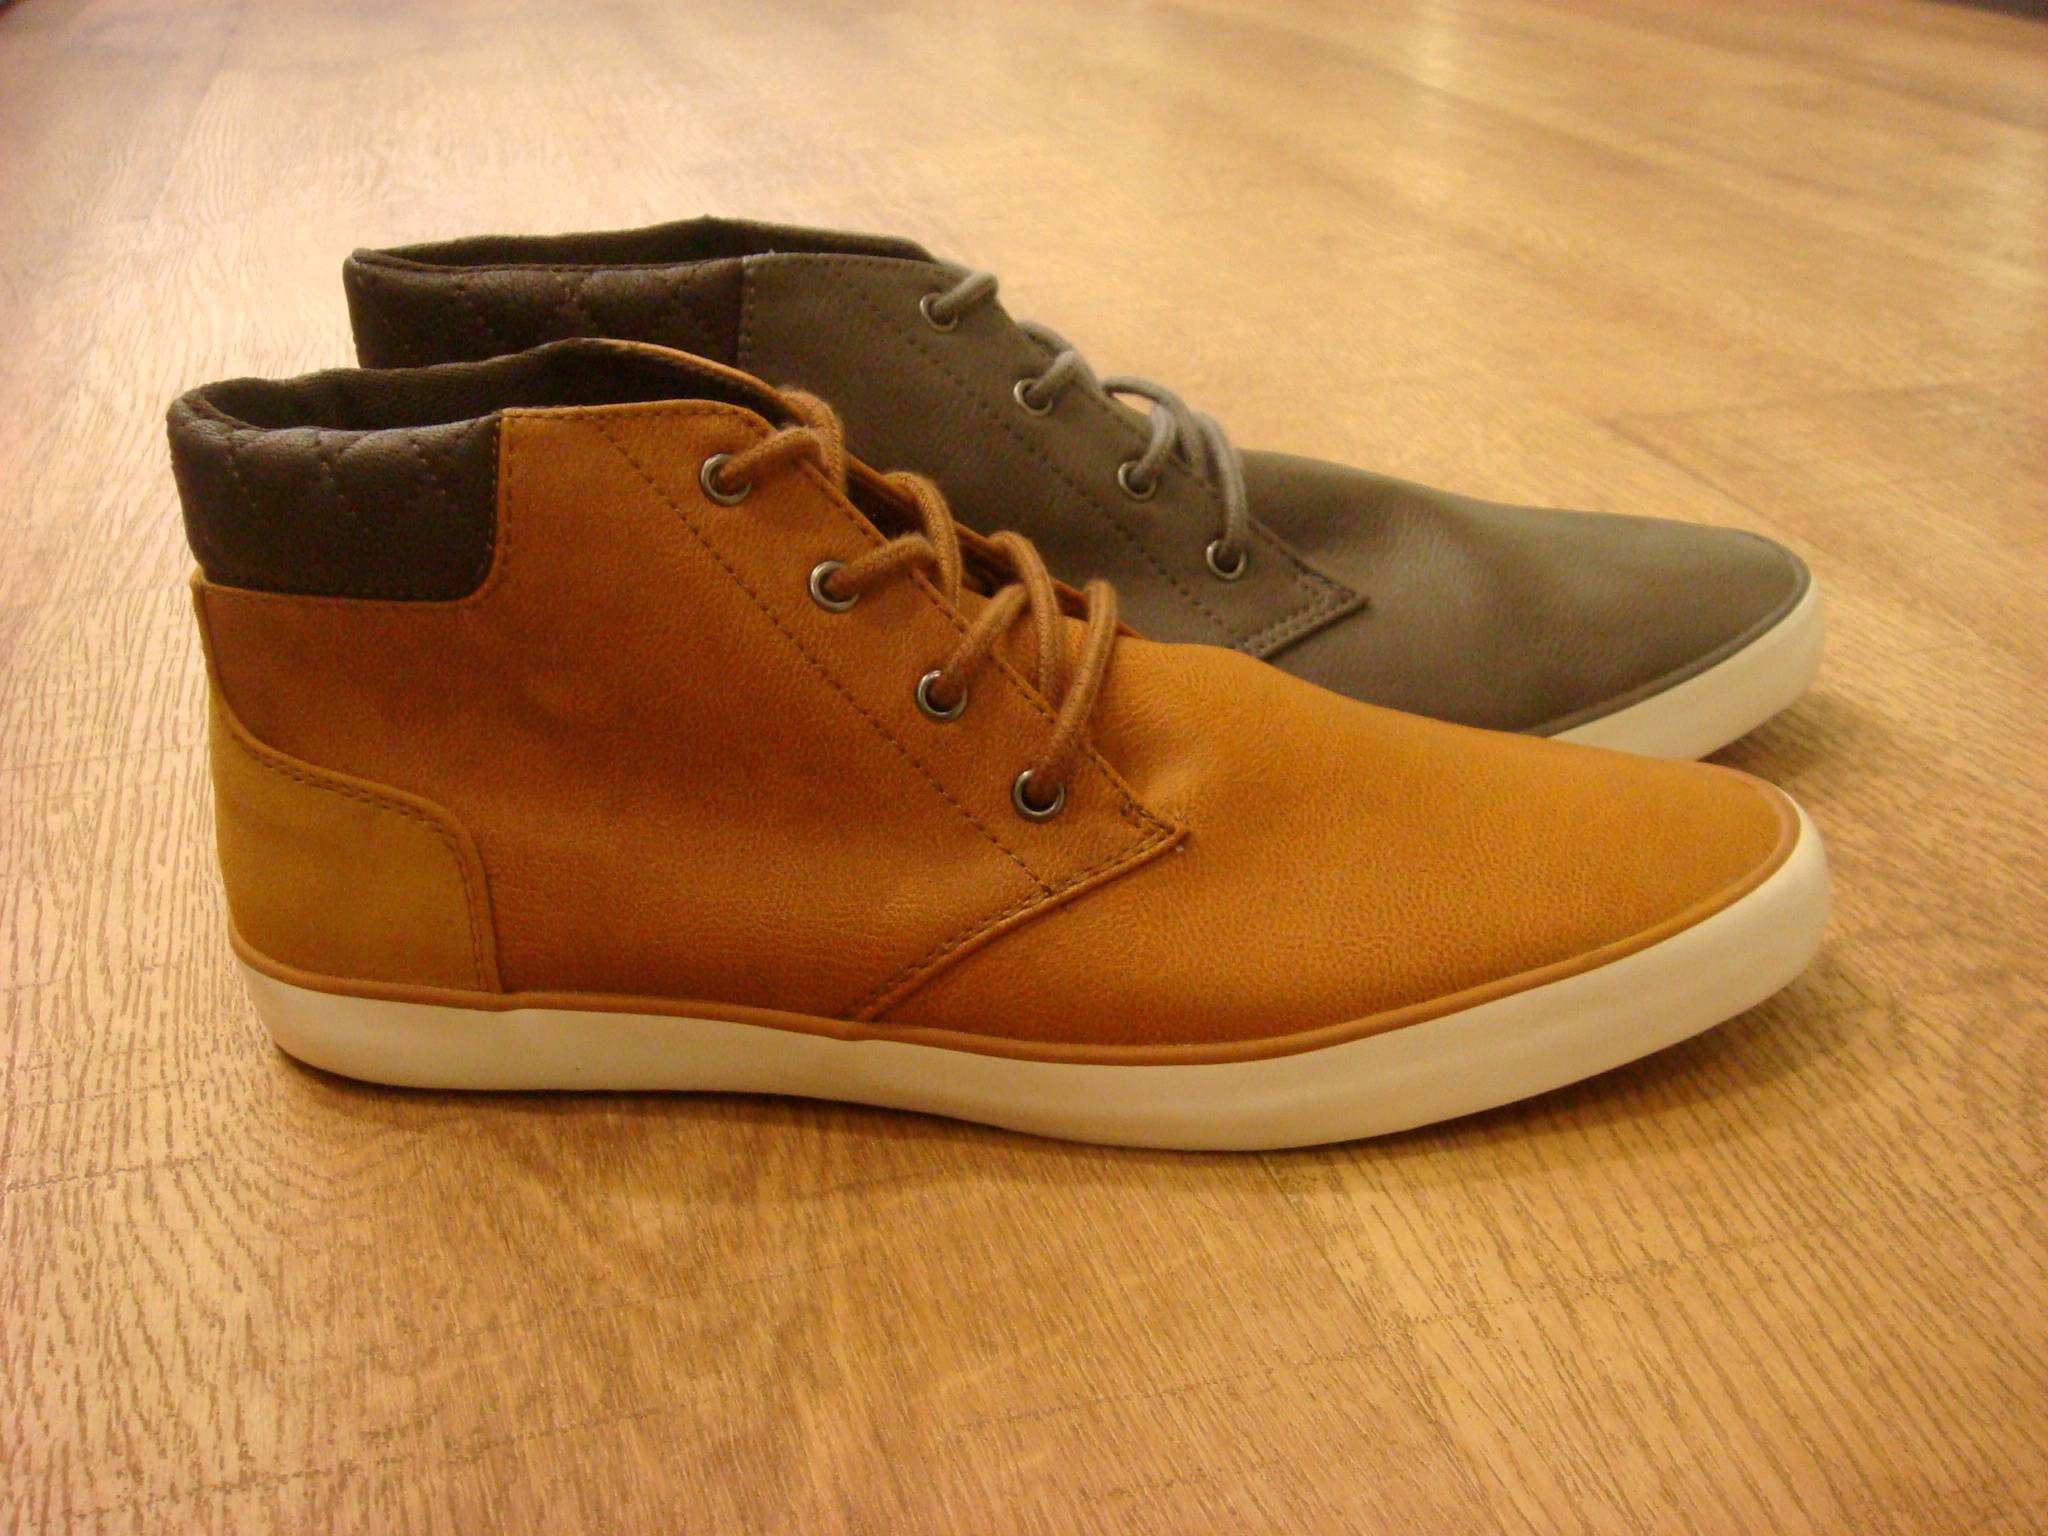 Aldo men's high-top shoes